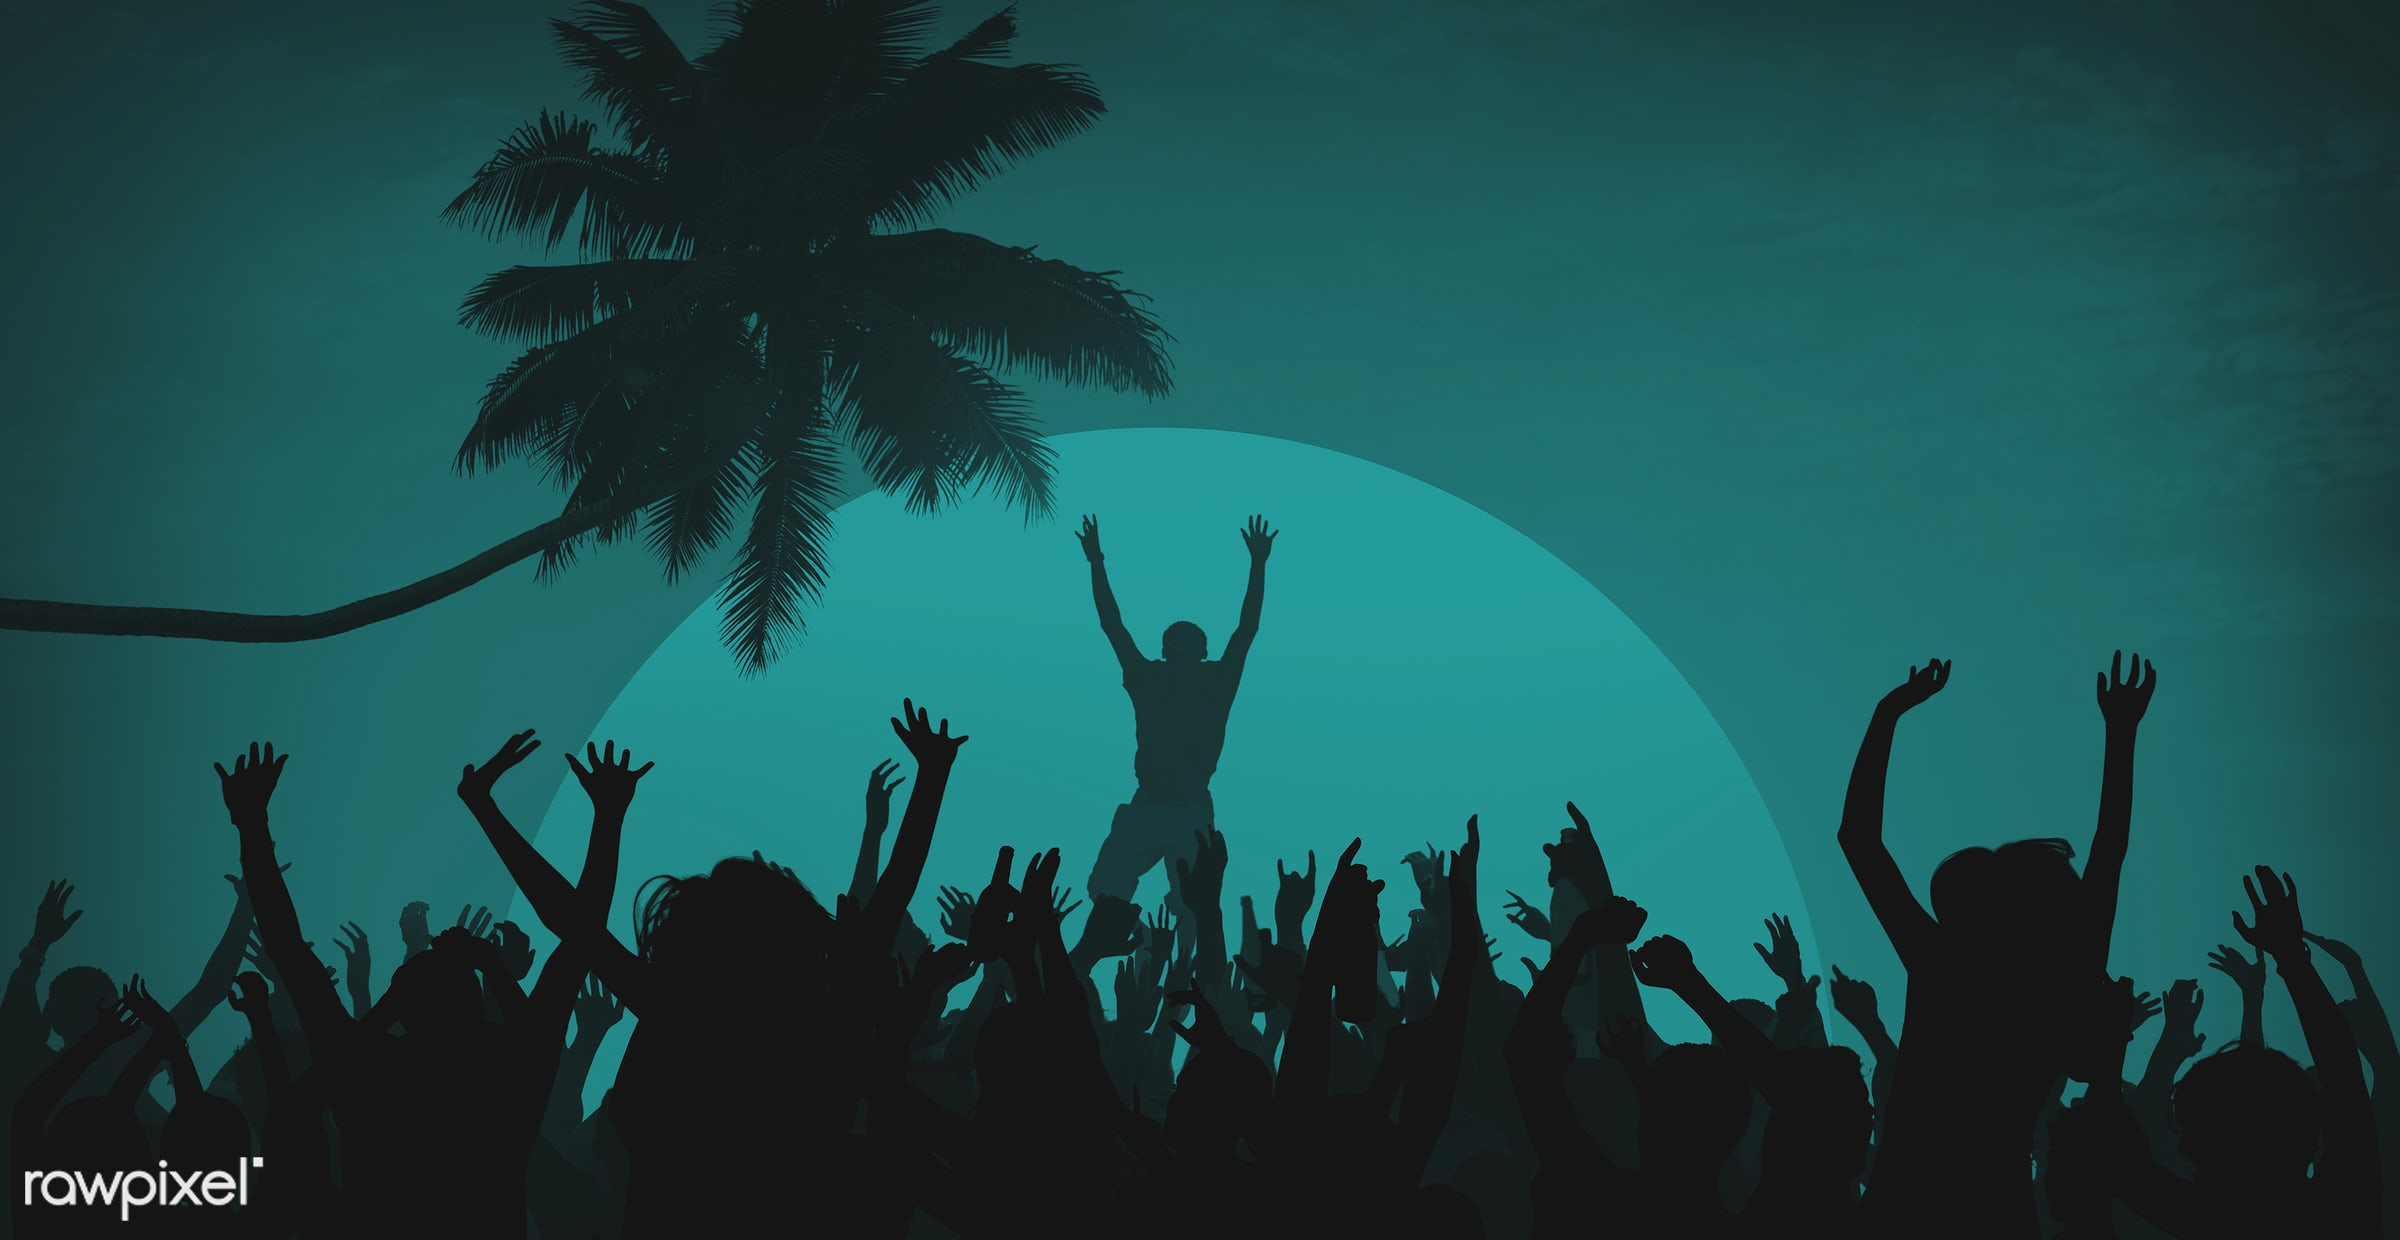 adolescence, arms outstretched, arms raised, audience, back lit, beach, carefree, celebration, cheerful, coconut palm tree,...